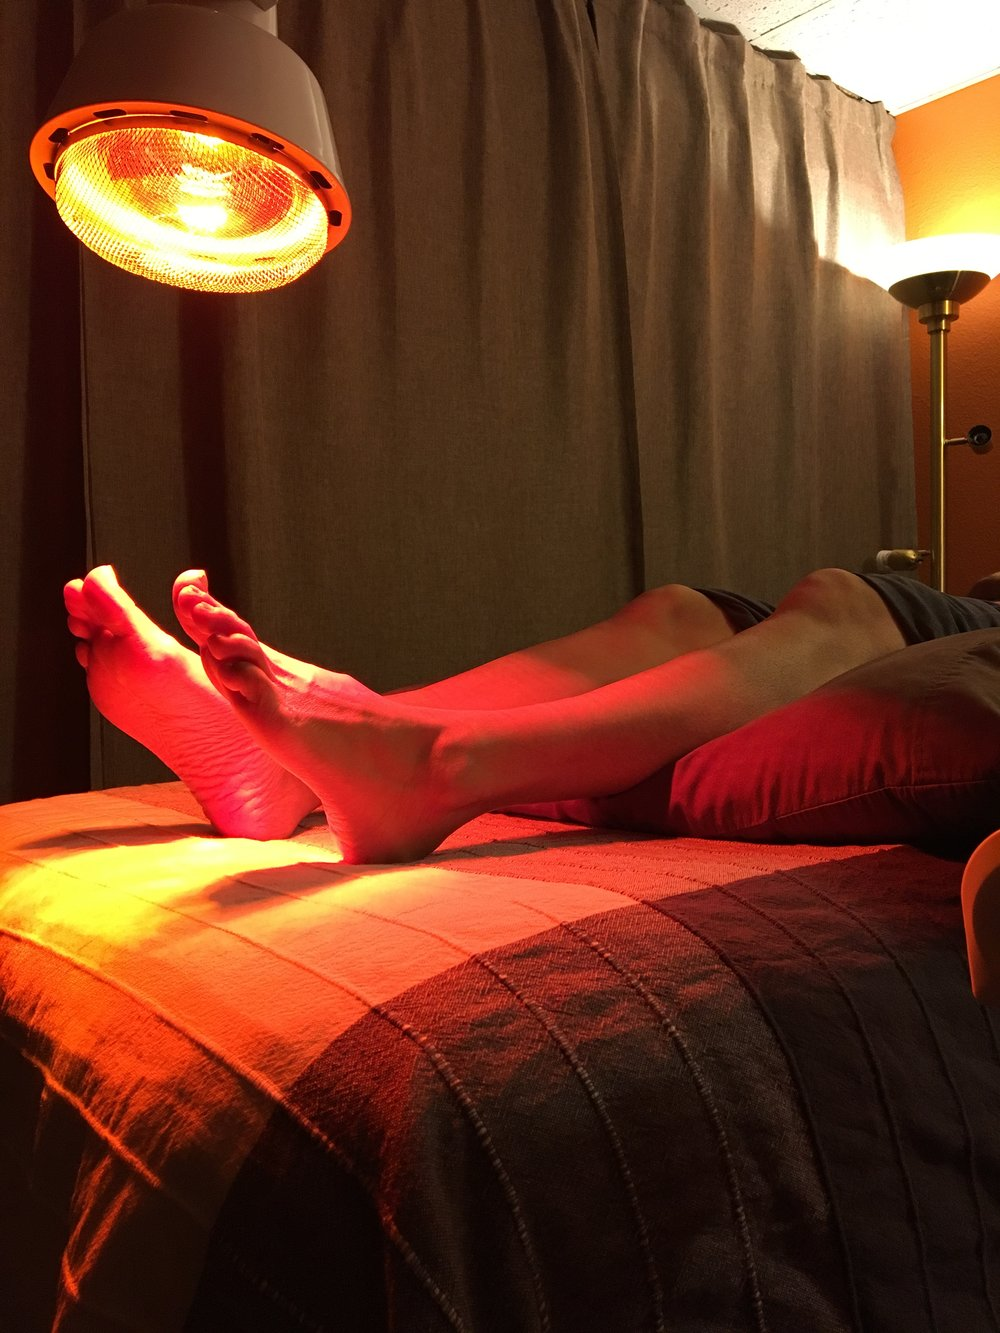 Specialized treatment rooms designed for the utmost in comfort and care.  The heat lamps during the Acupuncture treatment provide an ultimate comforting experience.